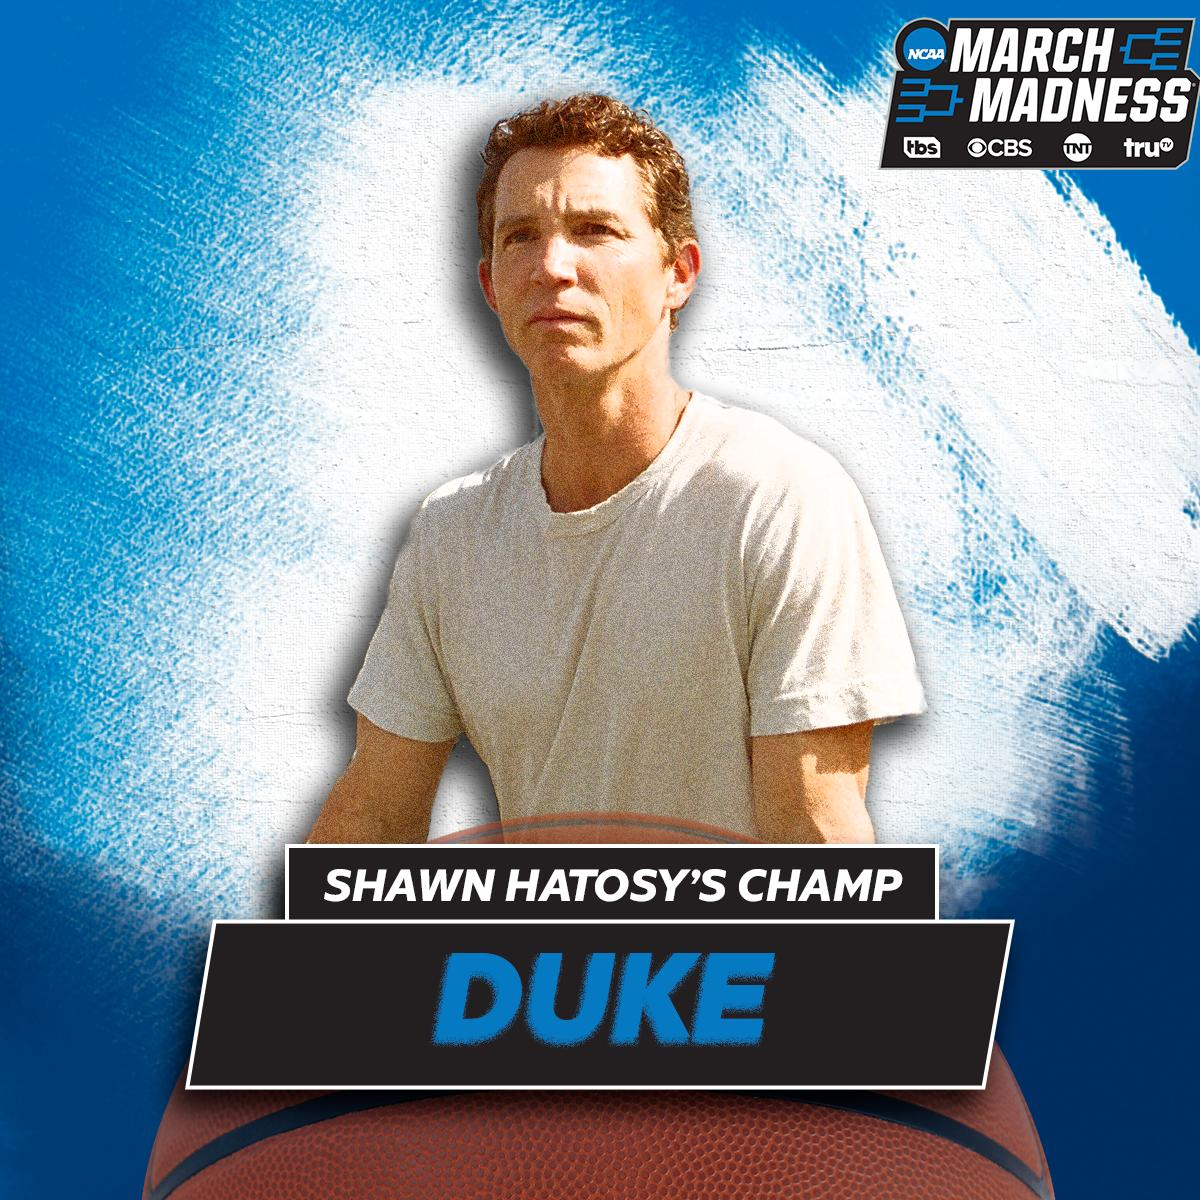 Tnt Drama On Twitter Shawnhatosy Knows How To Pick Em The Animalkingdom Star Checked In With His Marchmadness Picks Do You Think He S Got It Right Https T Co Sotqokkabp